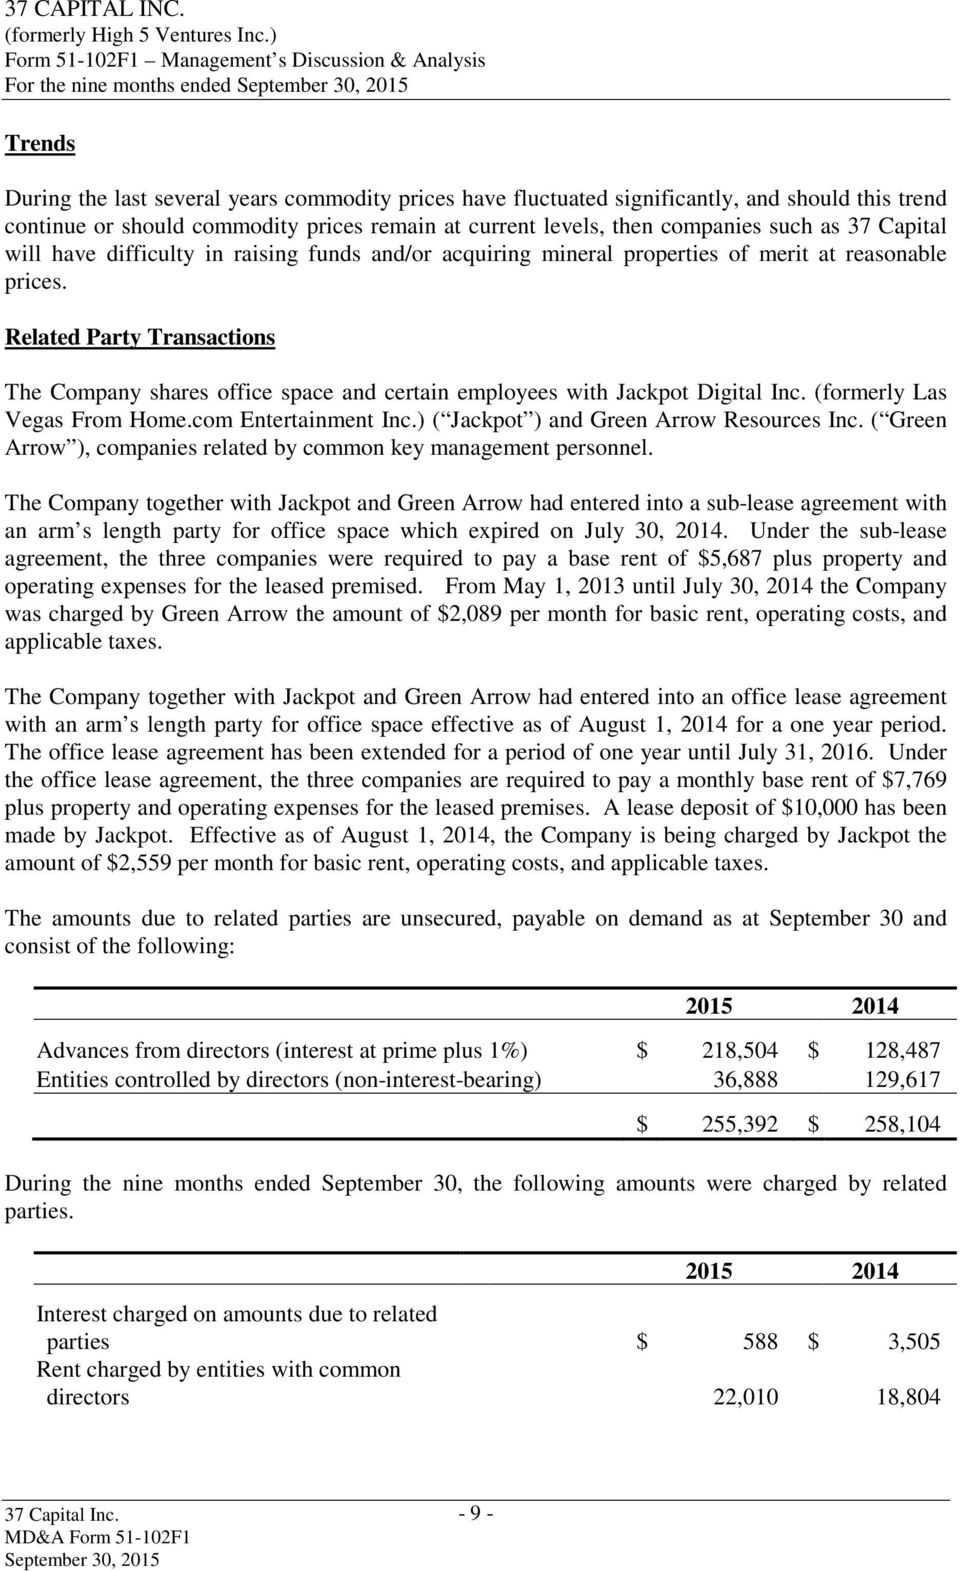 Related Party Transactions The Company shares office space and certain employees with Jackpot Digital Inc. (formerly Las Vegas From Home.com Entertainment Inc.